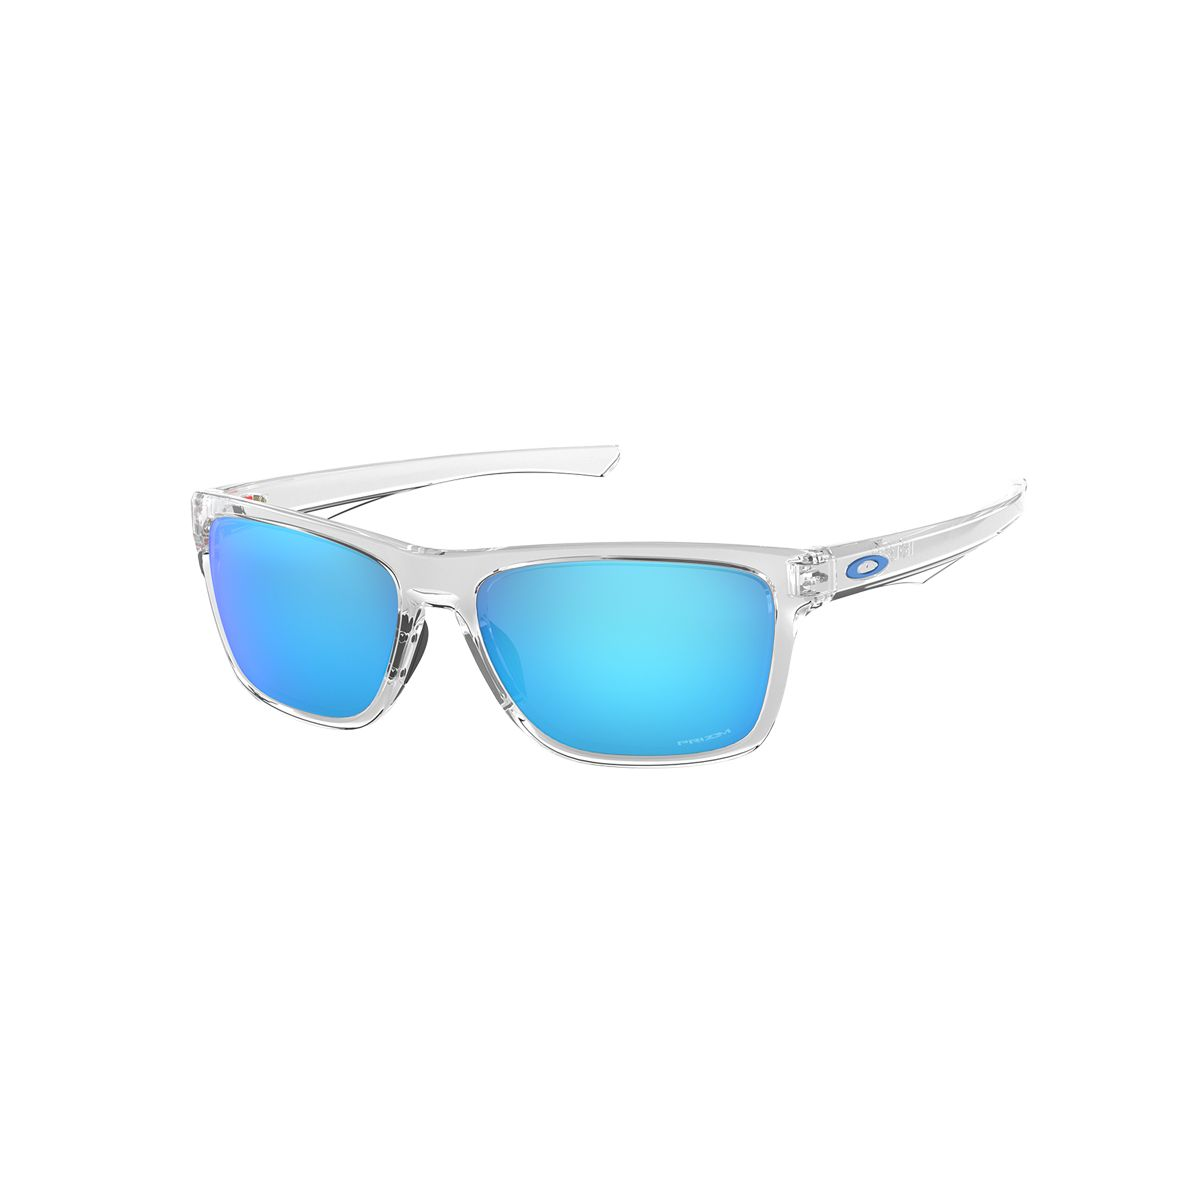 HOLSTON sunglasses